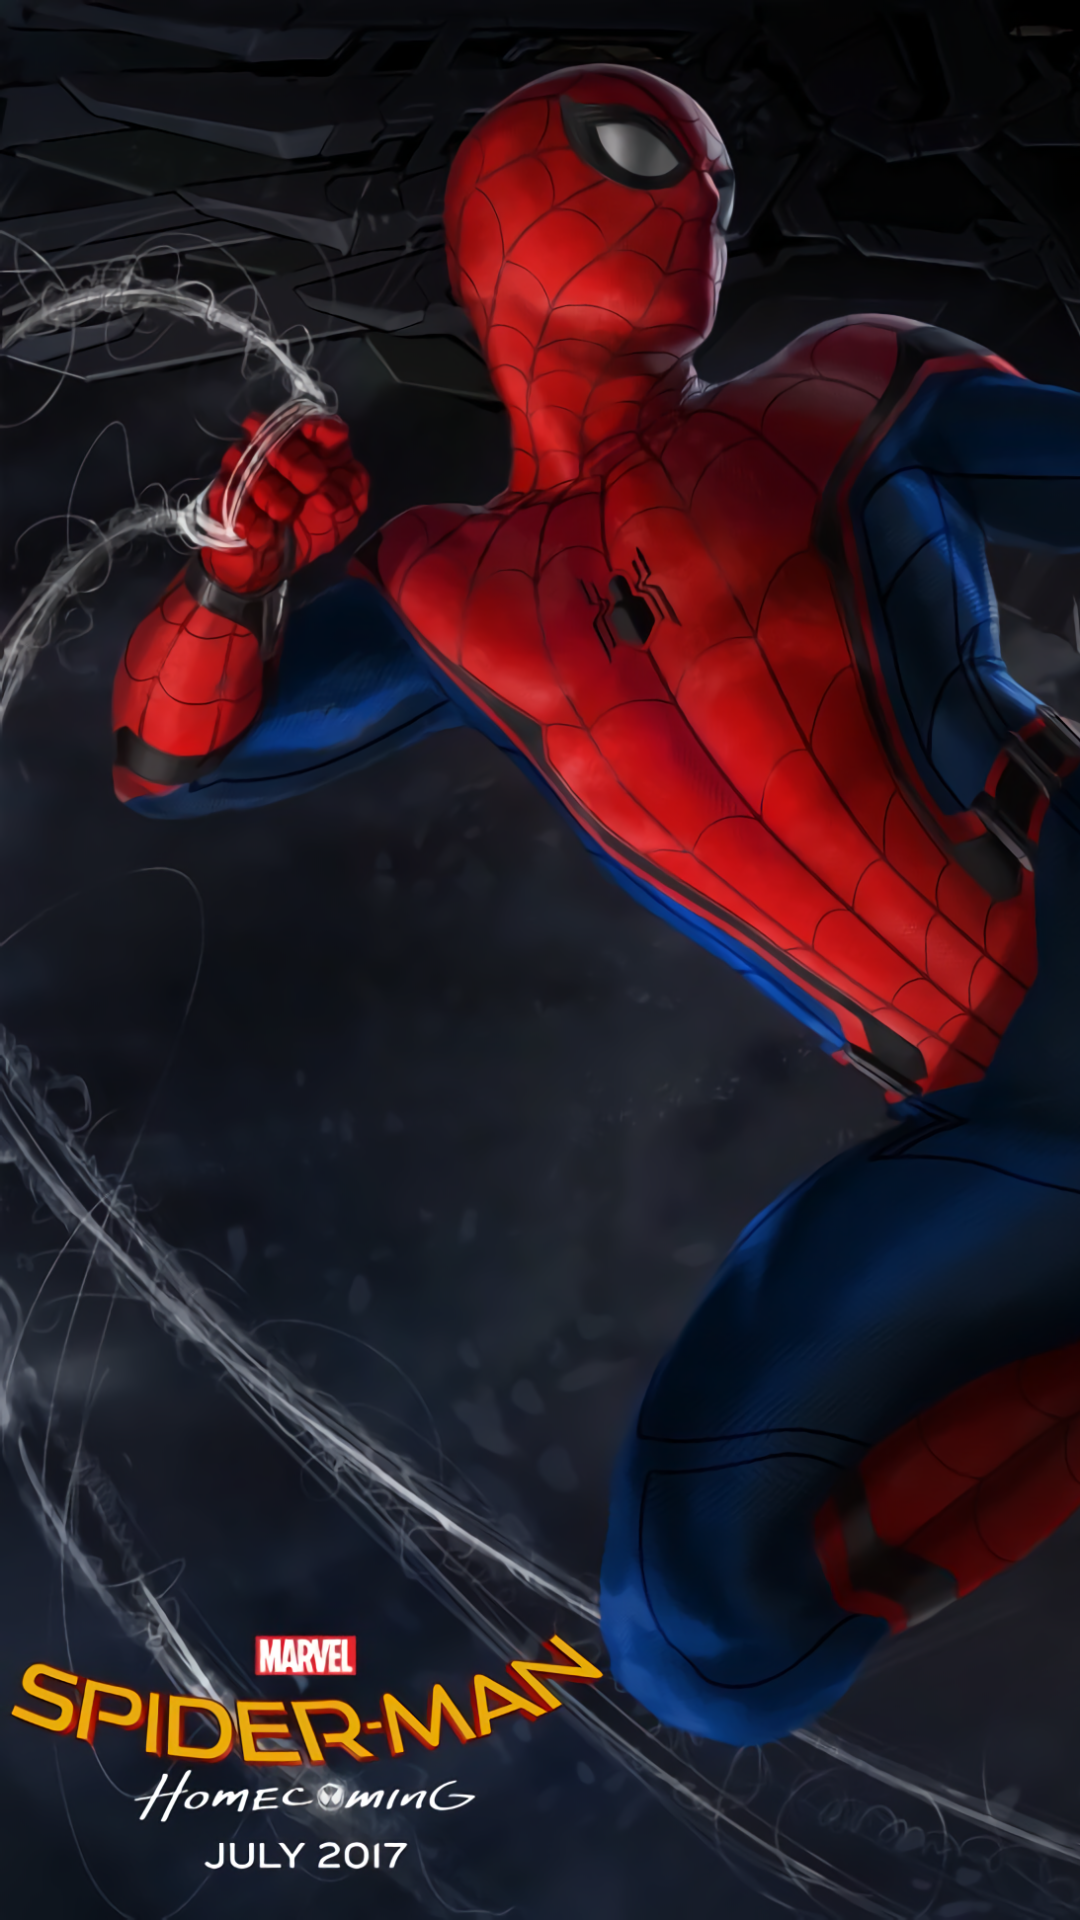 MovieSpider Man Homecoming 1080x1920 Wallpaper ID 658412 1080x1920